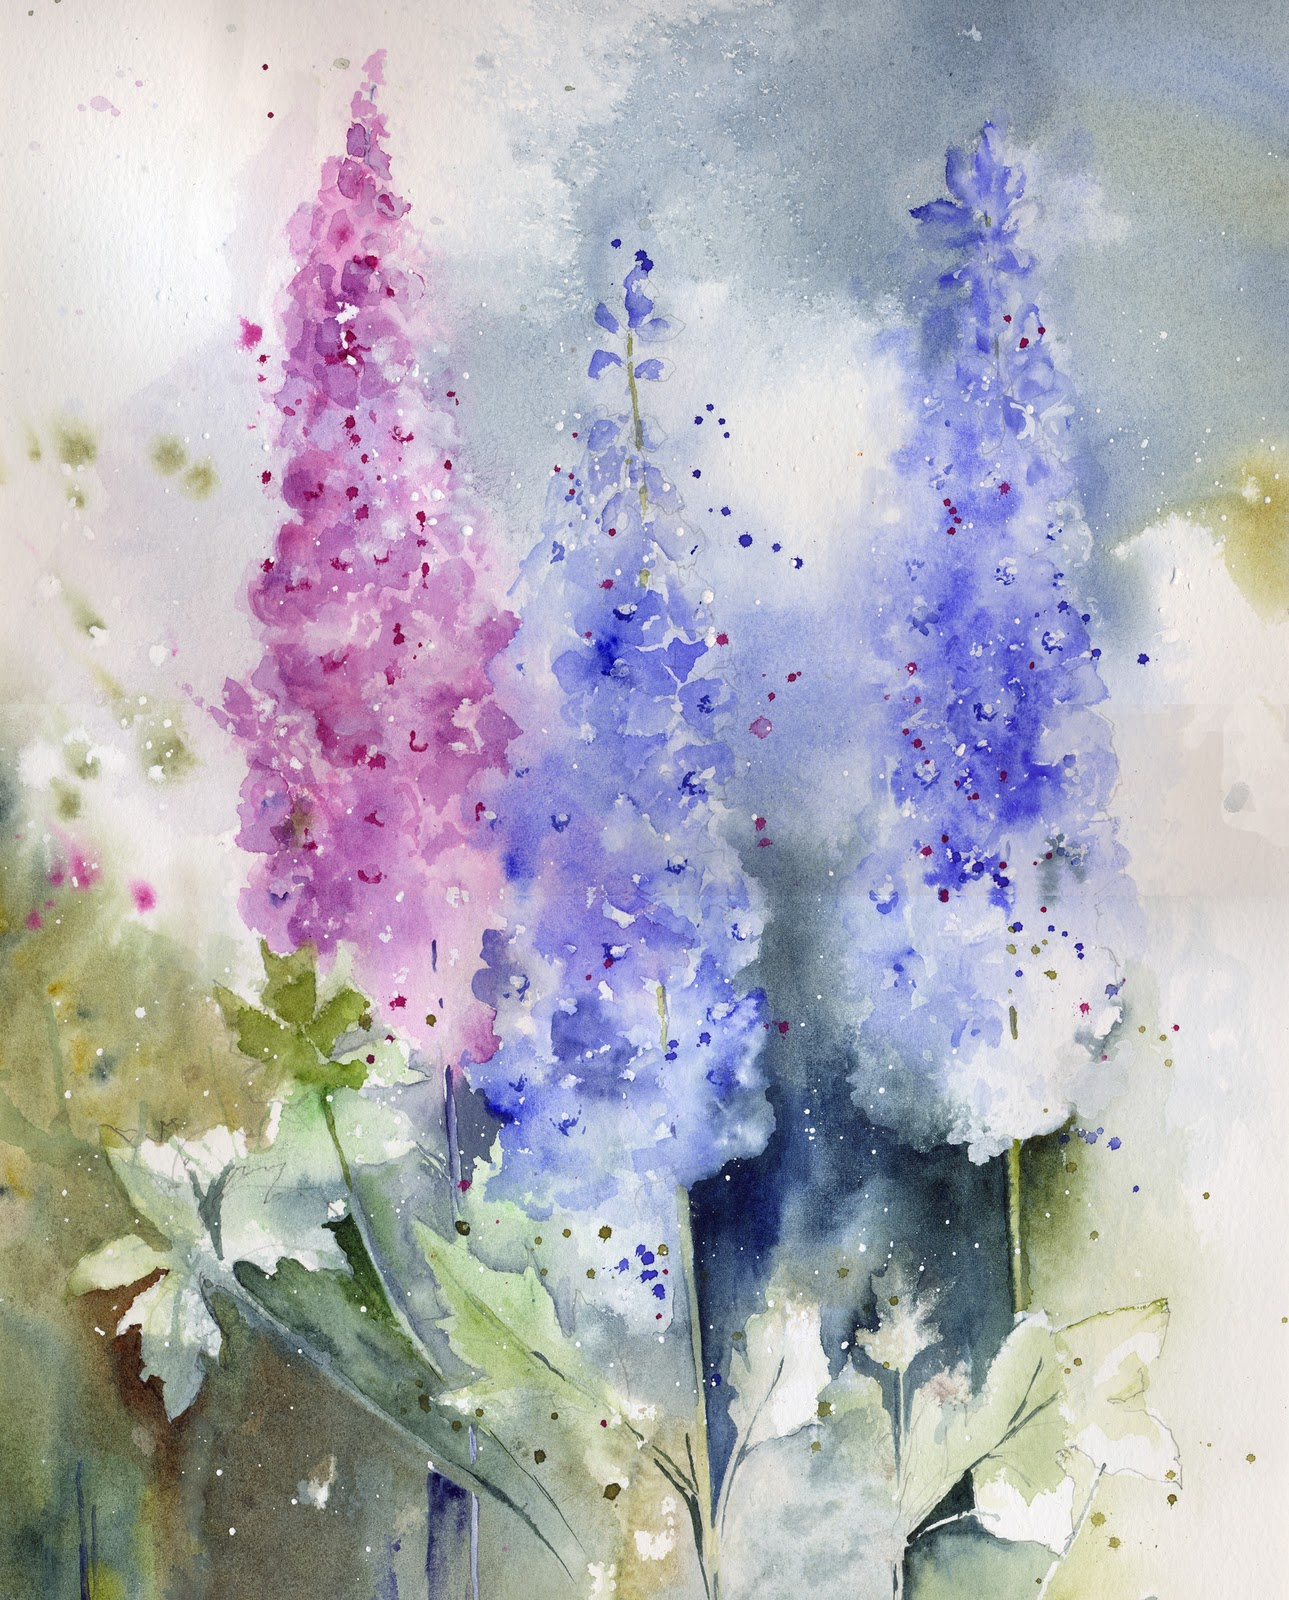 watercolor paintings images - 736×1073